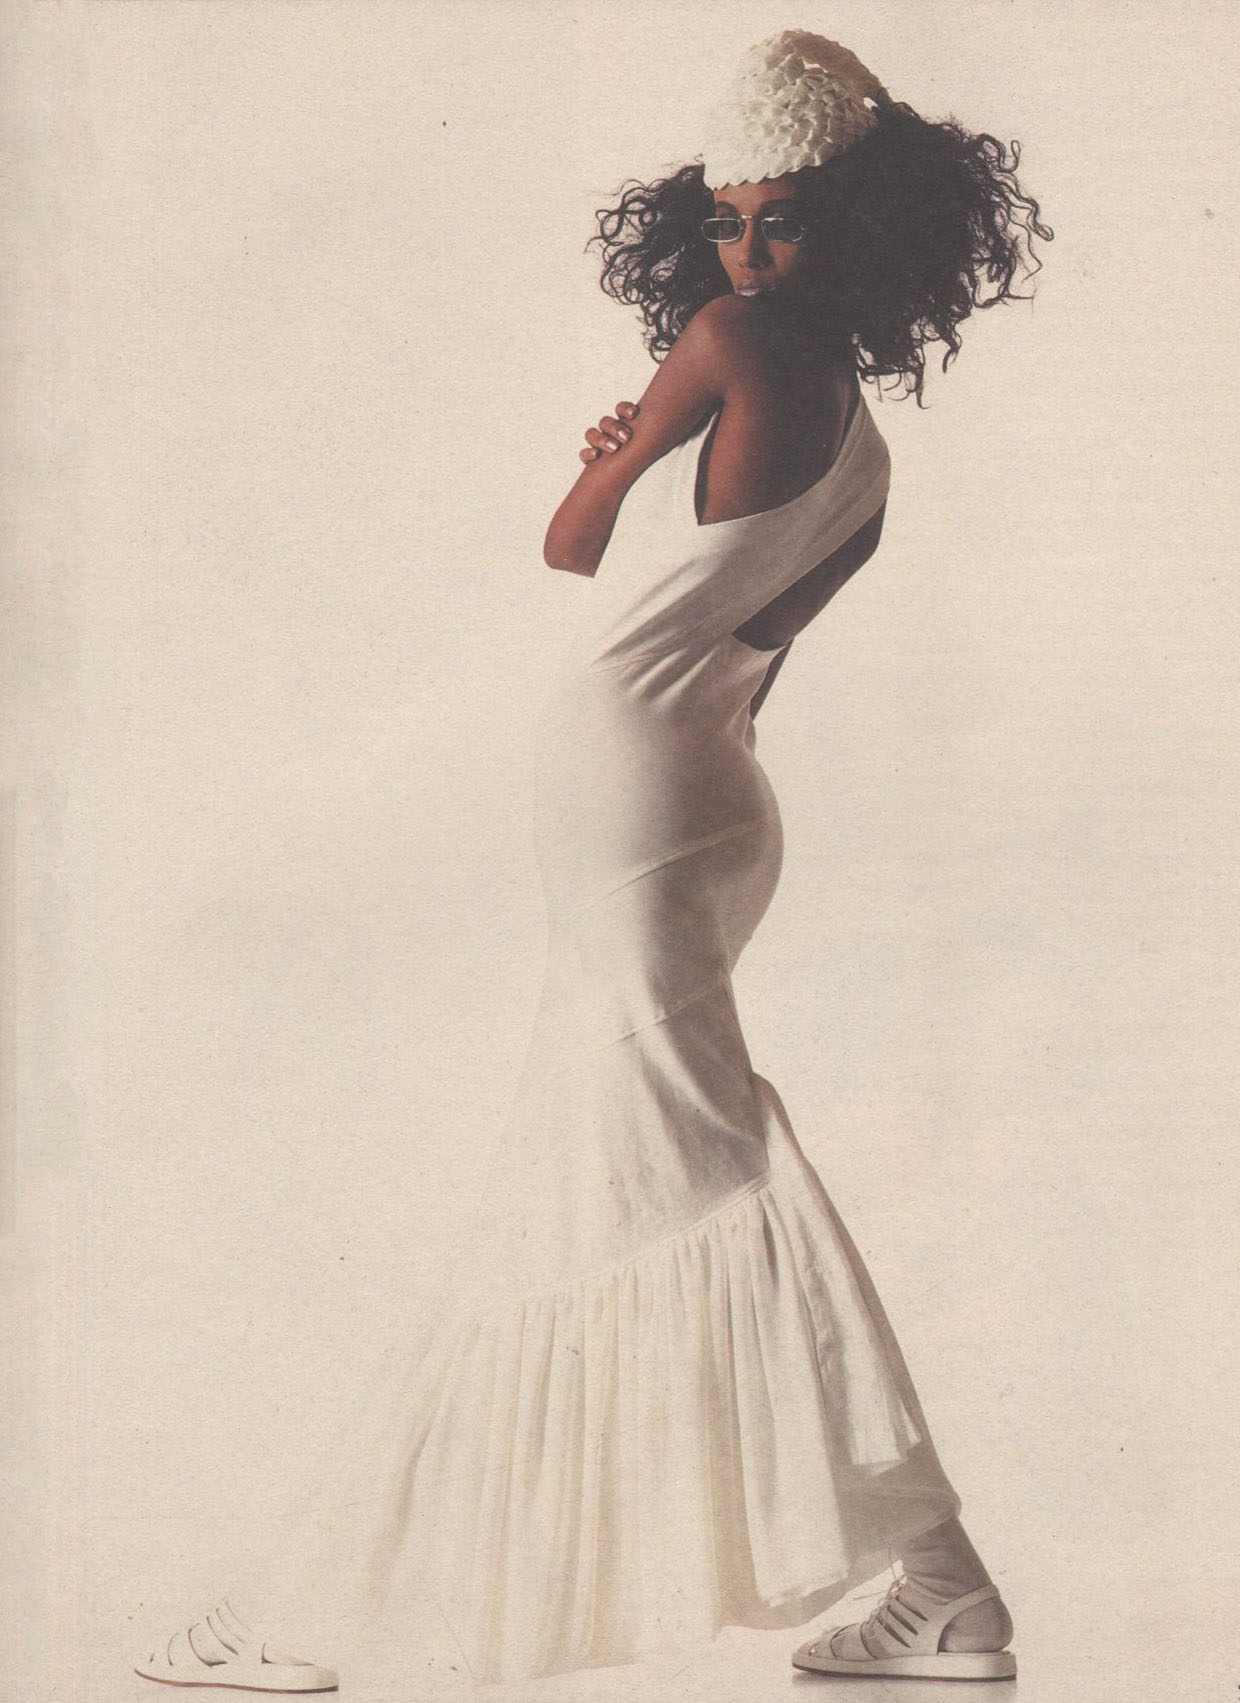 IMAN | REI KAWAKUBO FOR COMME DES GARCONS | 1986 | PHOTOGRAPHY SERGIO CAMINATA